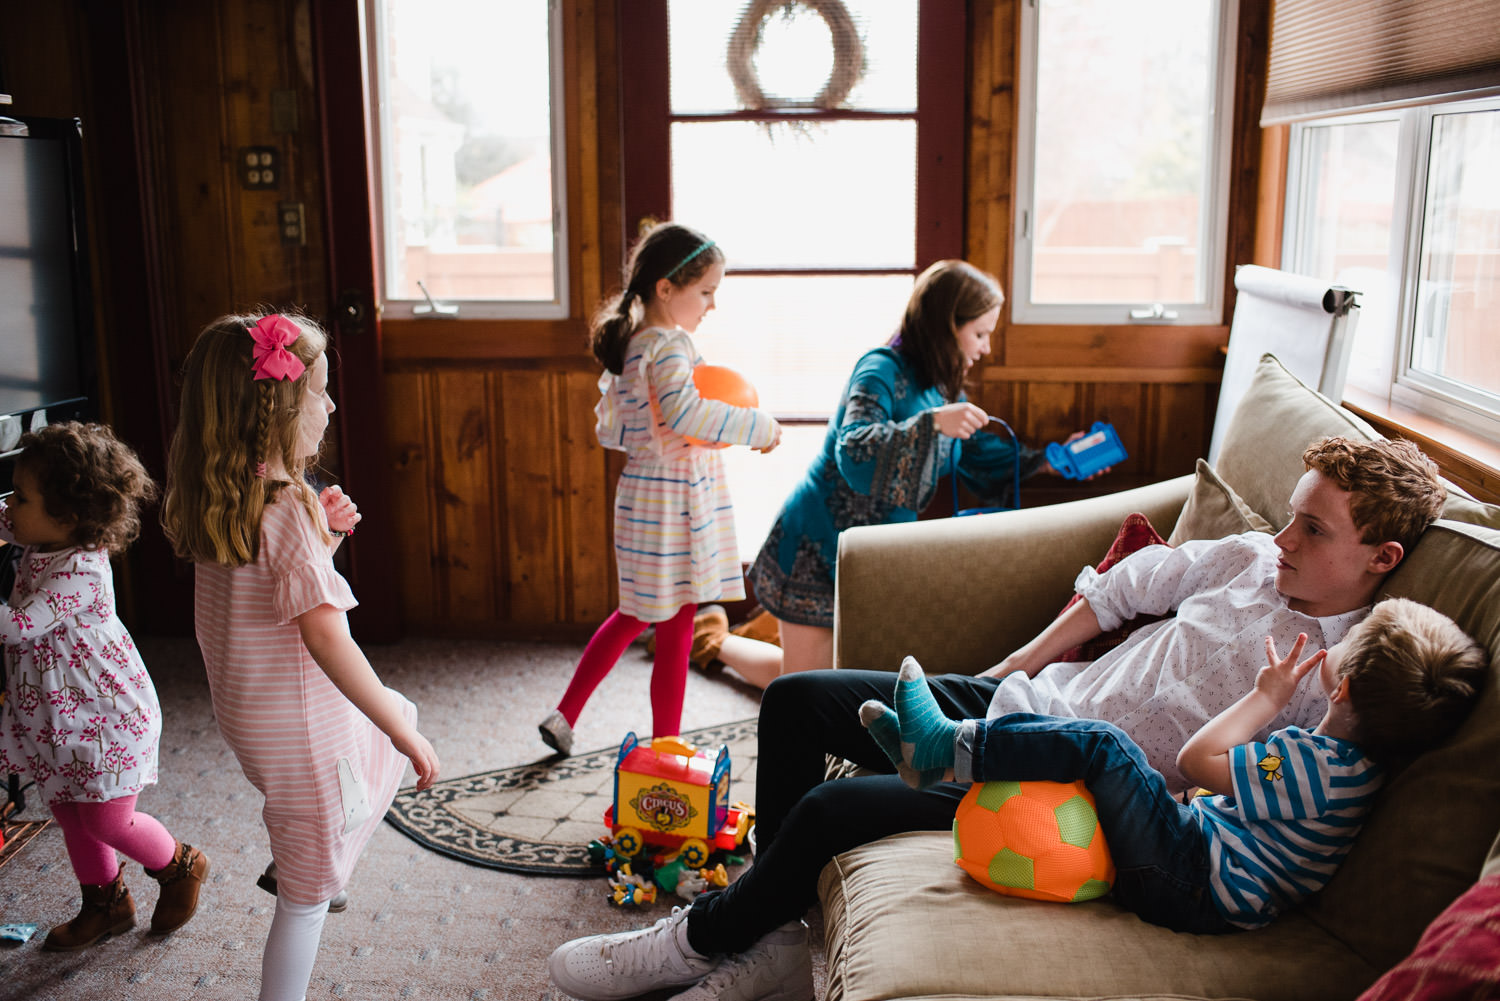 Kids play in the sunroom of a house.